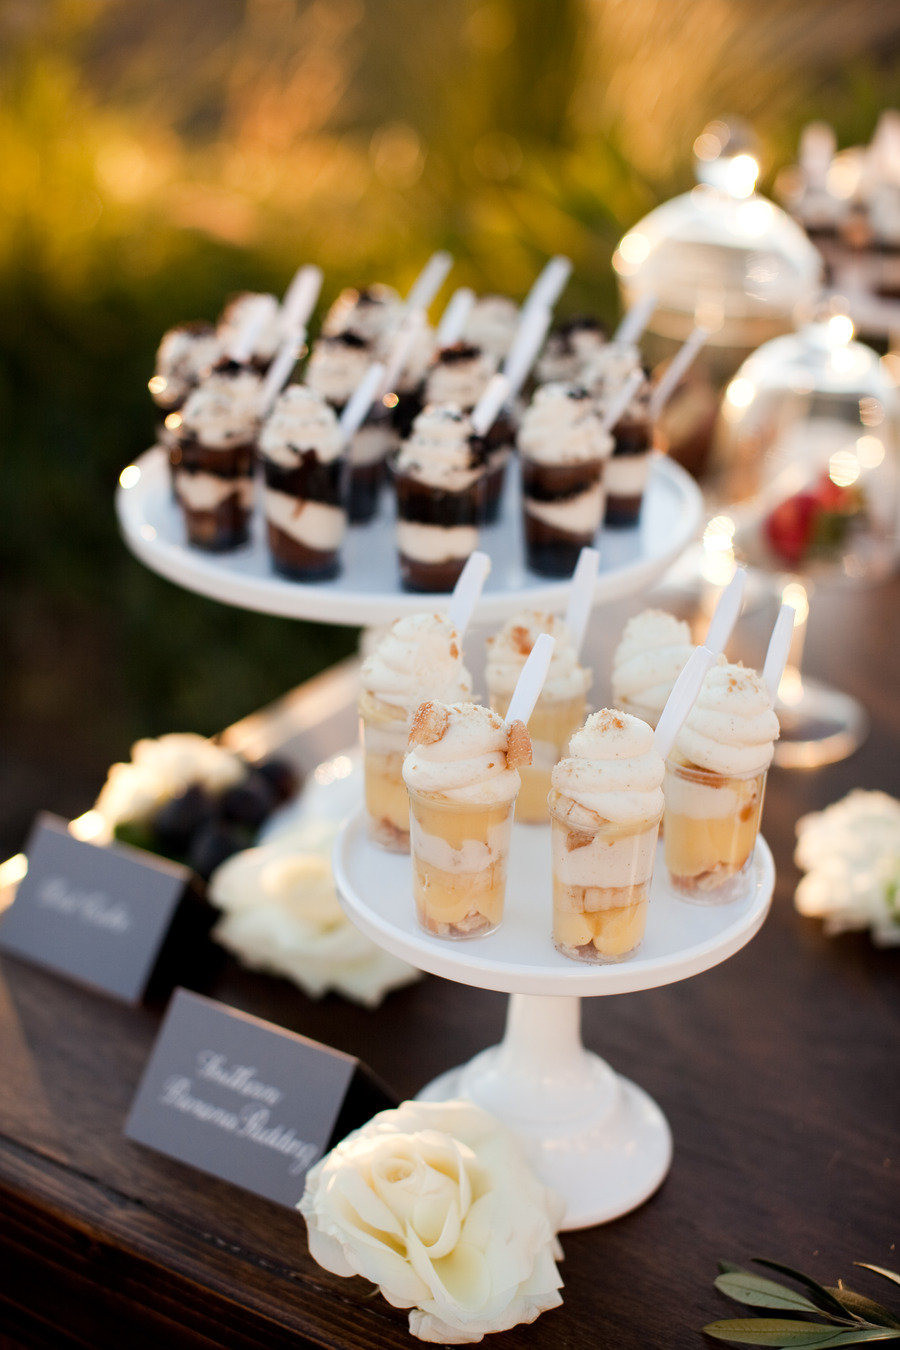 Wedding Dessert Ideas  Wedding Dessert Ideas that are not cake wedding dessert